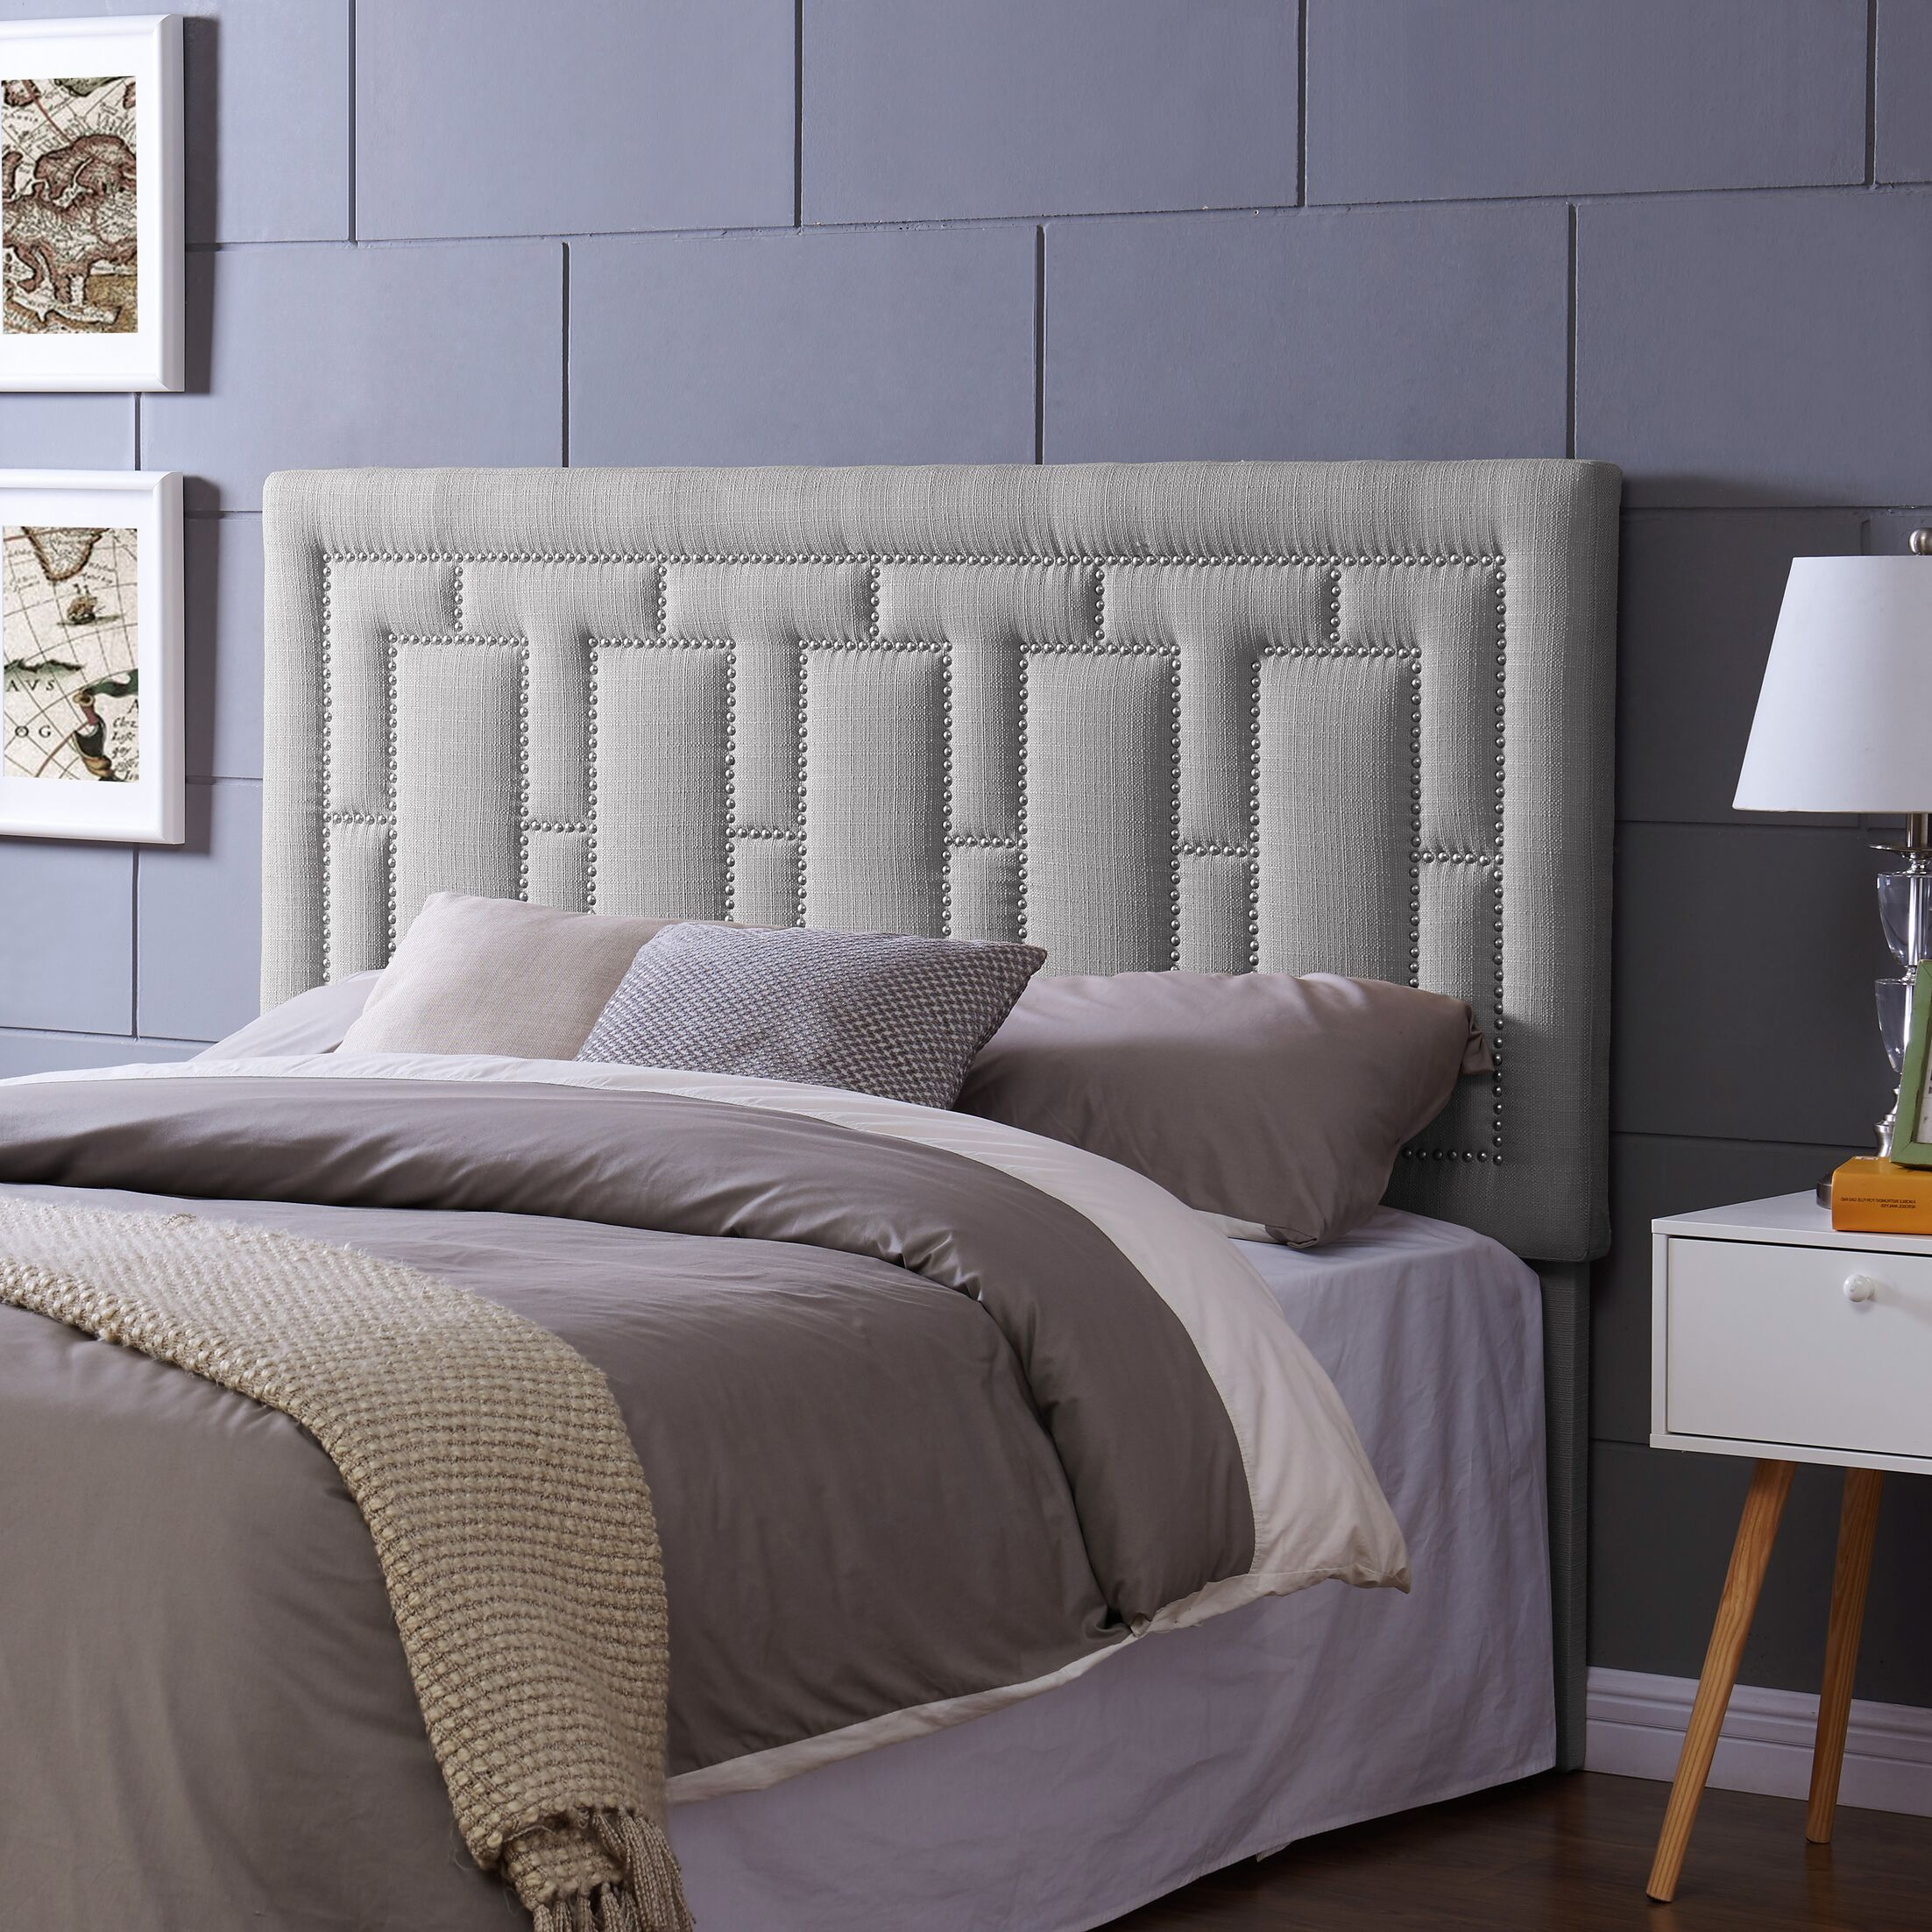 Kelsch Upholstered Panel Headboard Upholstery: Dove Gray, Size: King/CalKing